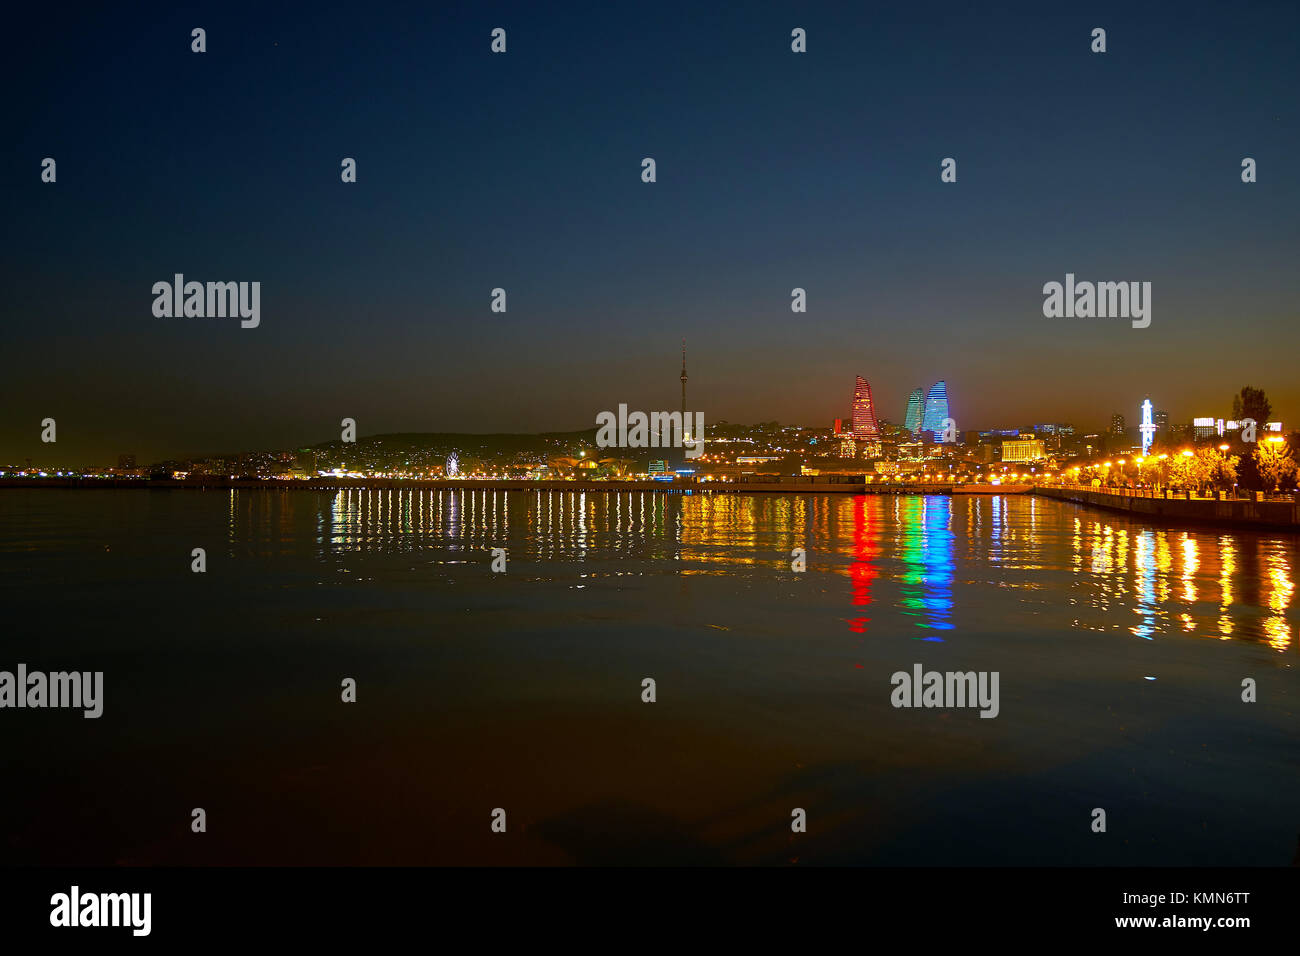 Embankment of Caspian Sea is the main landmark of the city, its the best place to overview beautiful illumination - Stock Image